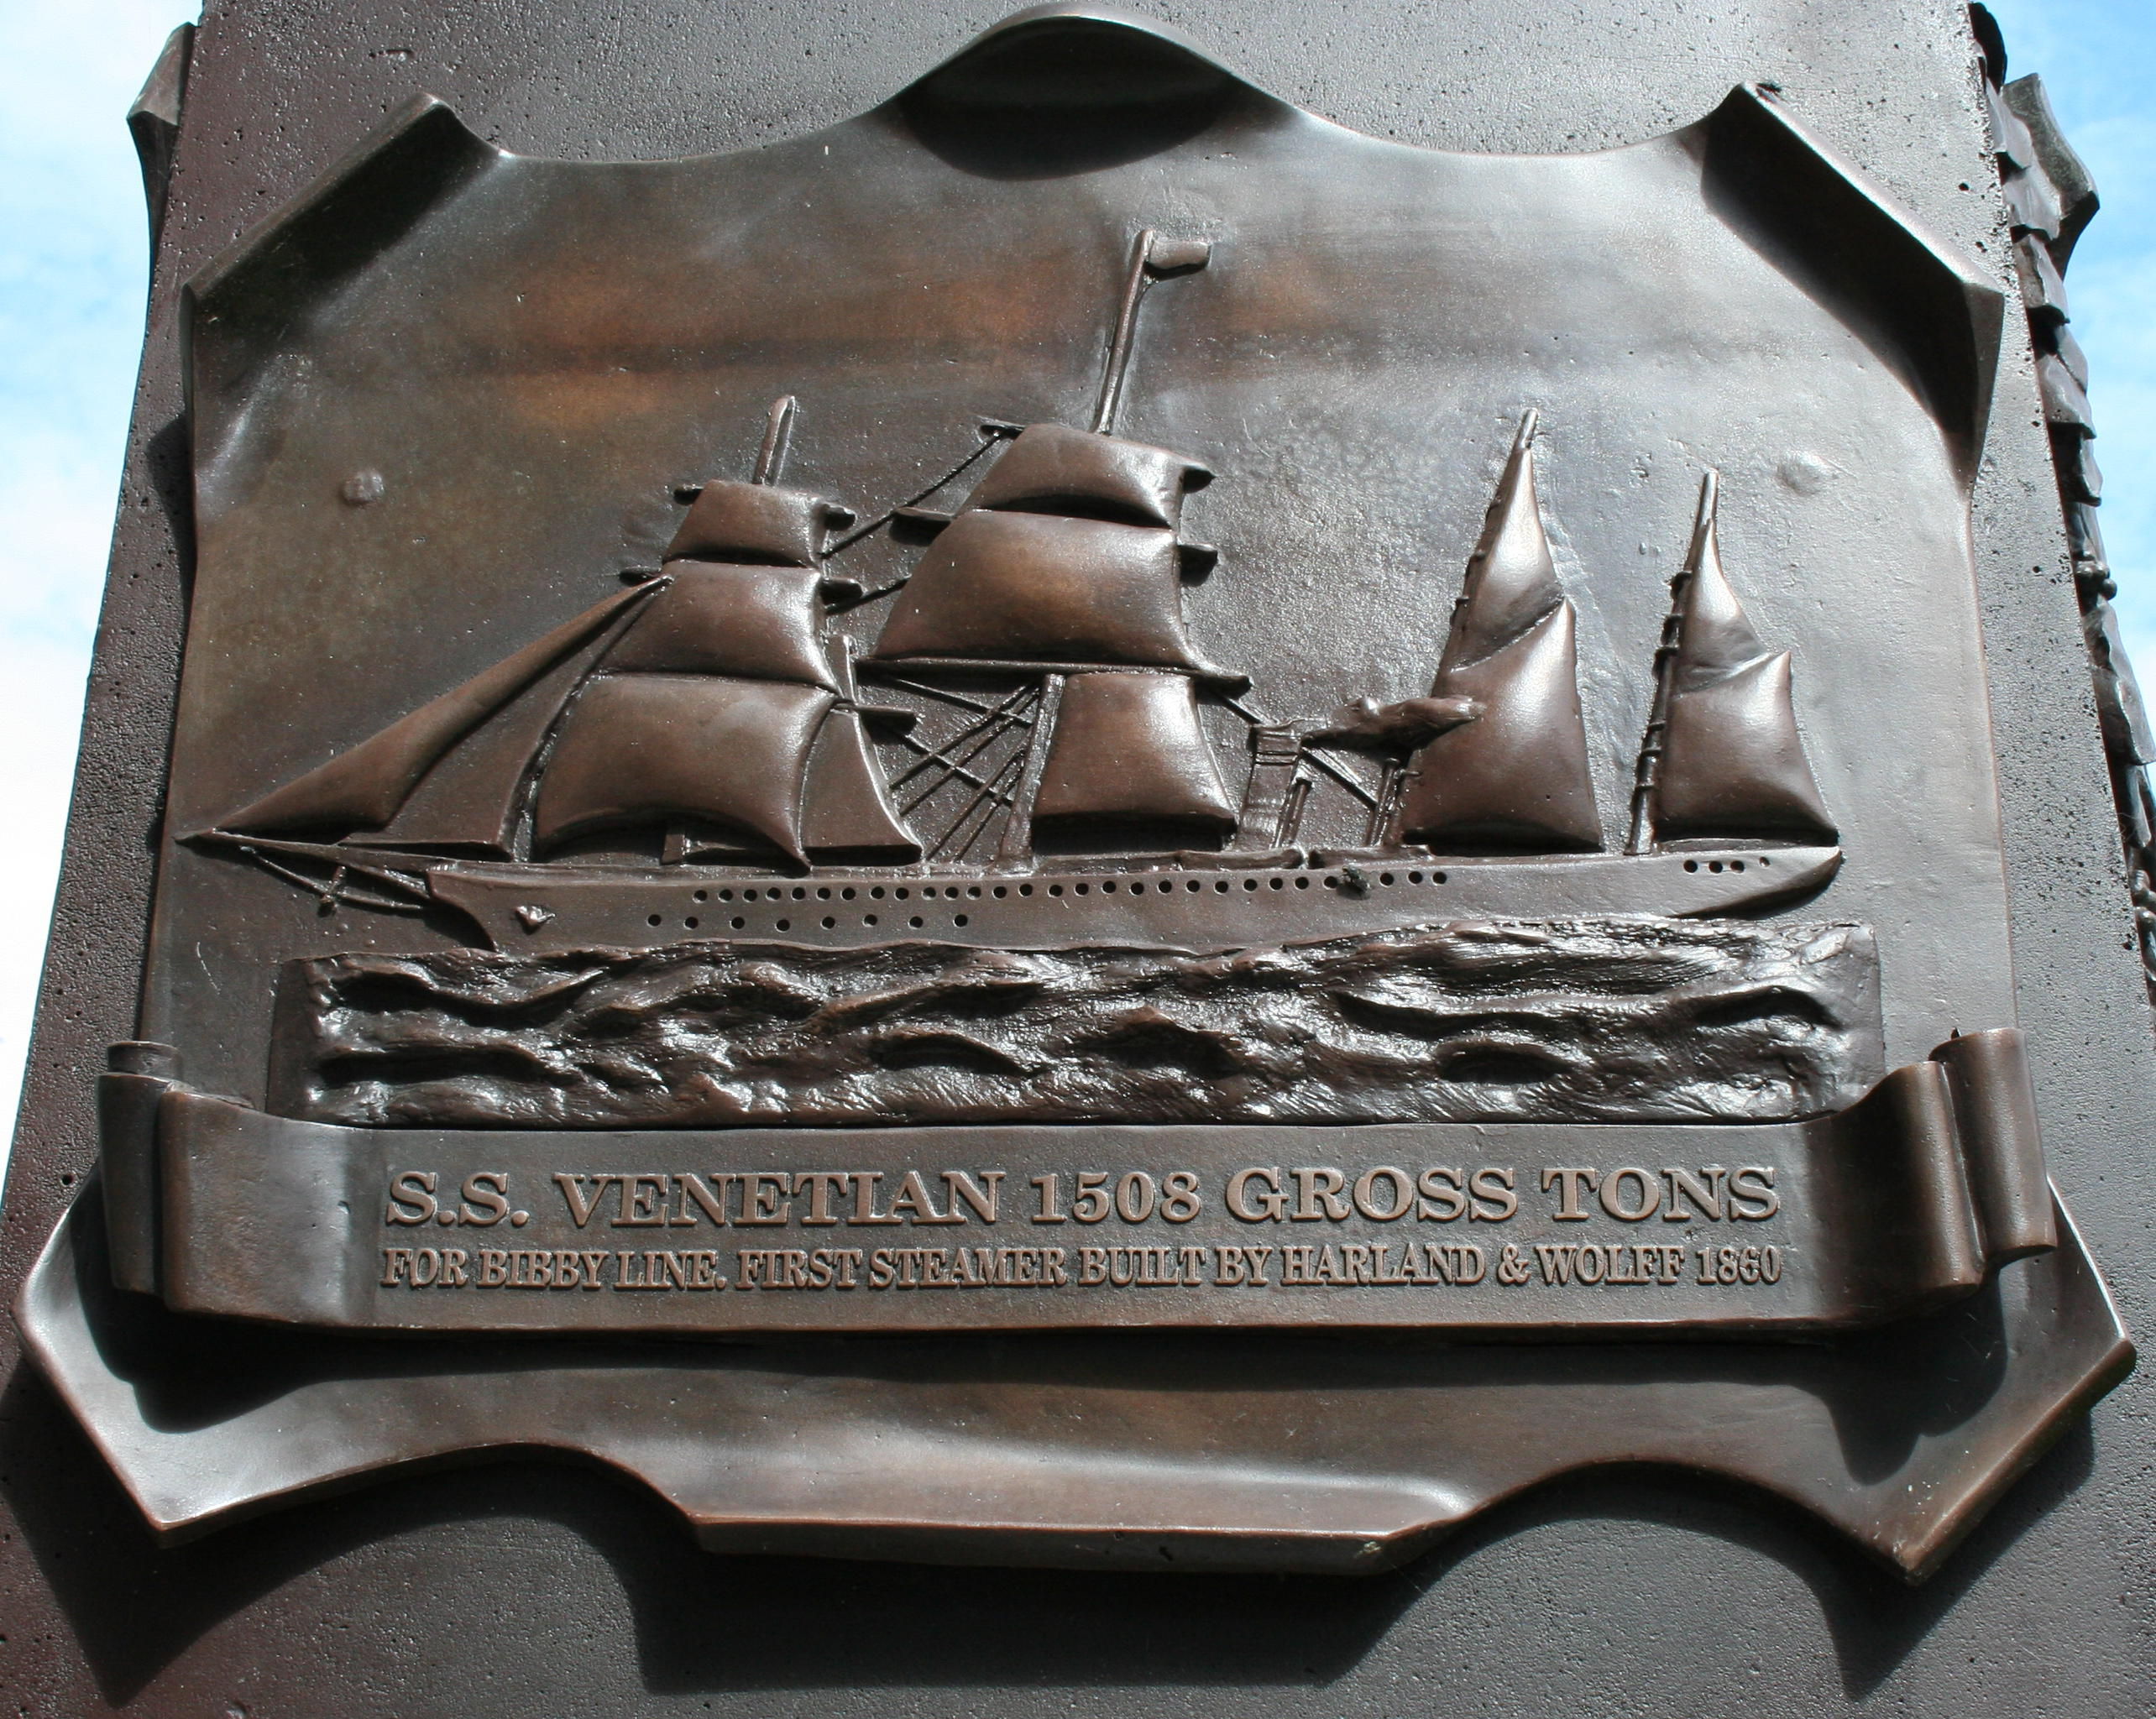 SS Venetian - the first steamer built by Harland & Wolff 1860 - a plaque on the William James Pirrie monument, grounds of Belfast City Hall.